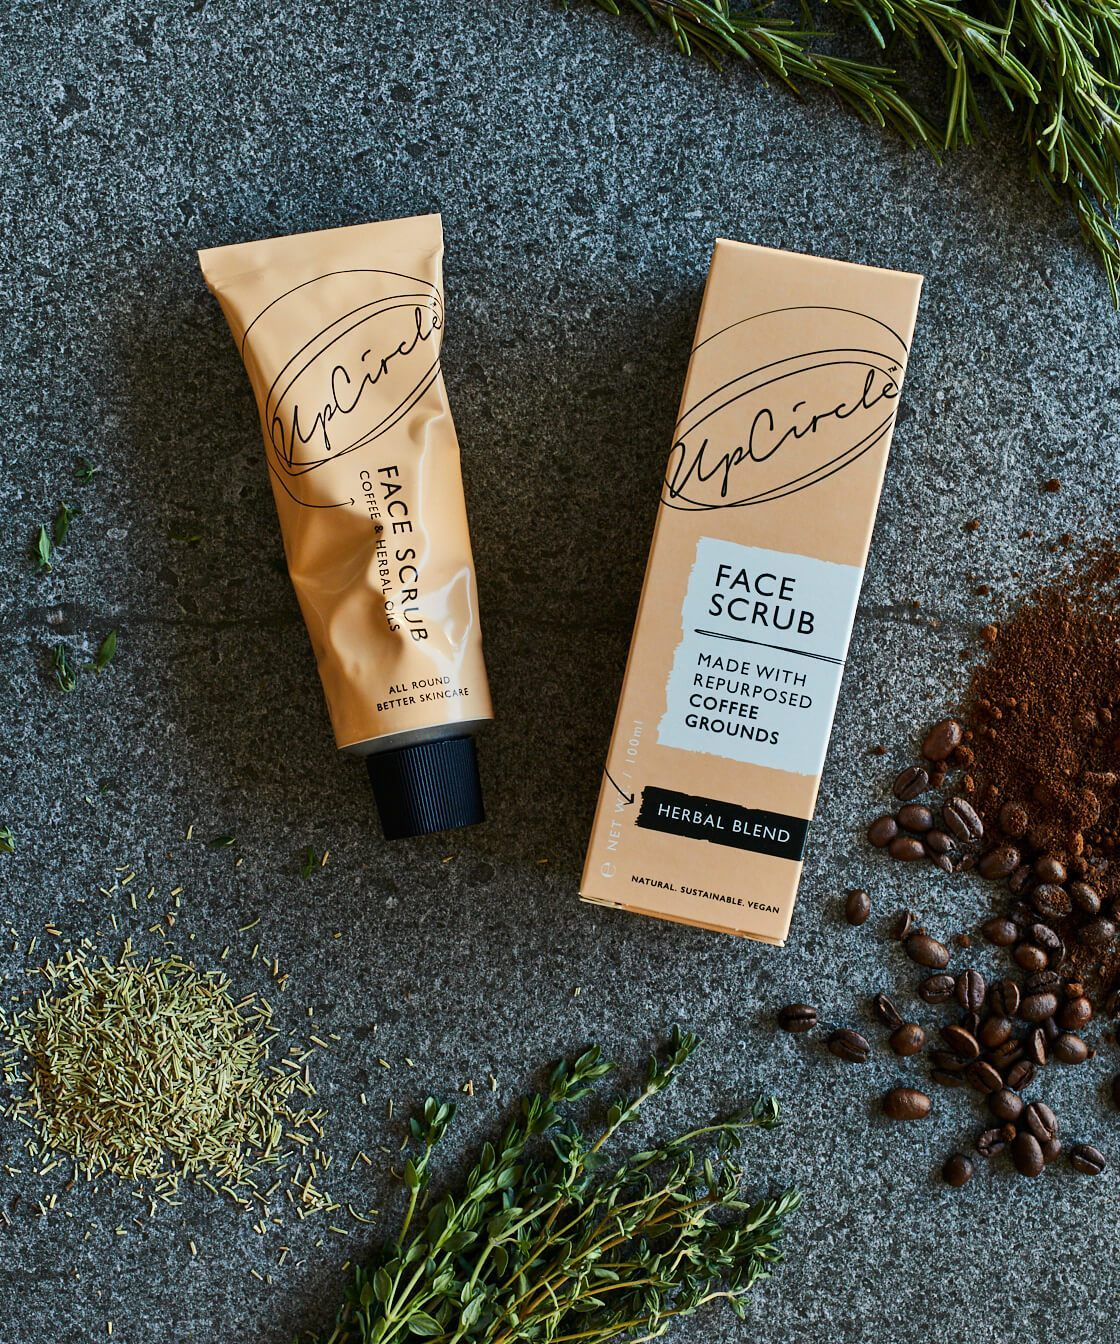 Upcircle Beauty - Founder - Anna & William  Rescuing used coffee grounds destined for landfill to make luxury, plastic-free, vegan and non- scrubs and skincare.